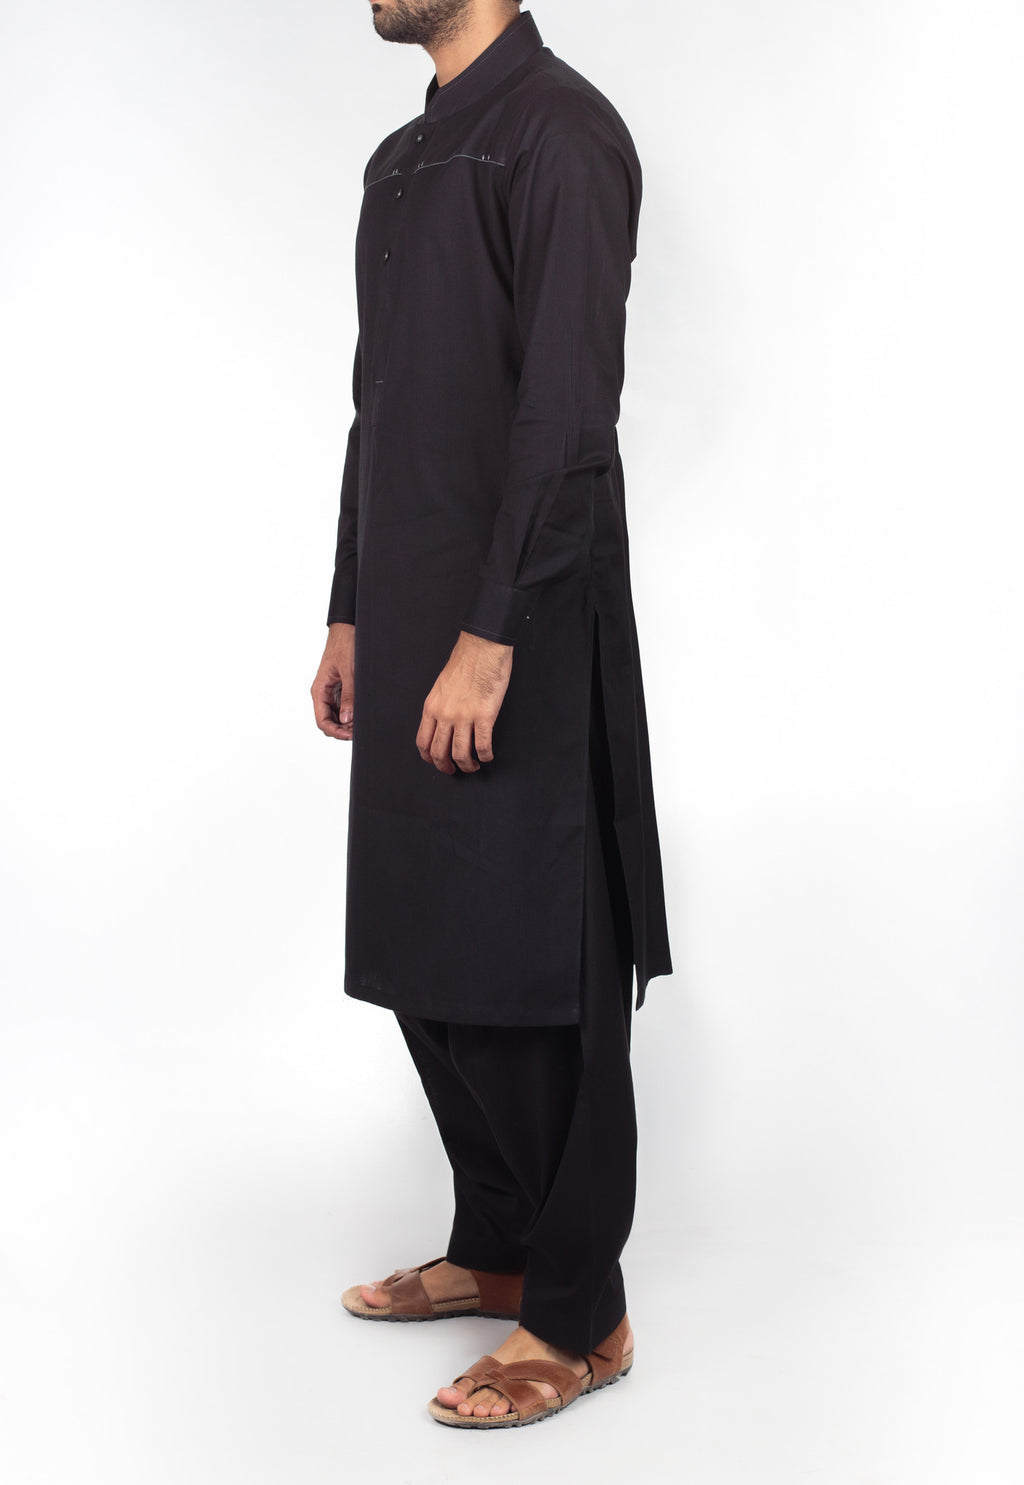 Image of   in Black SKU: RQ-16213-Large-Black